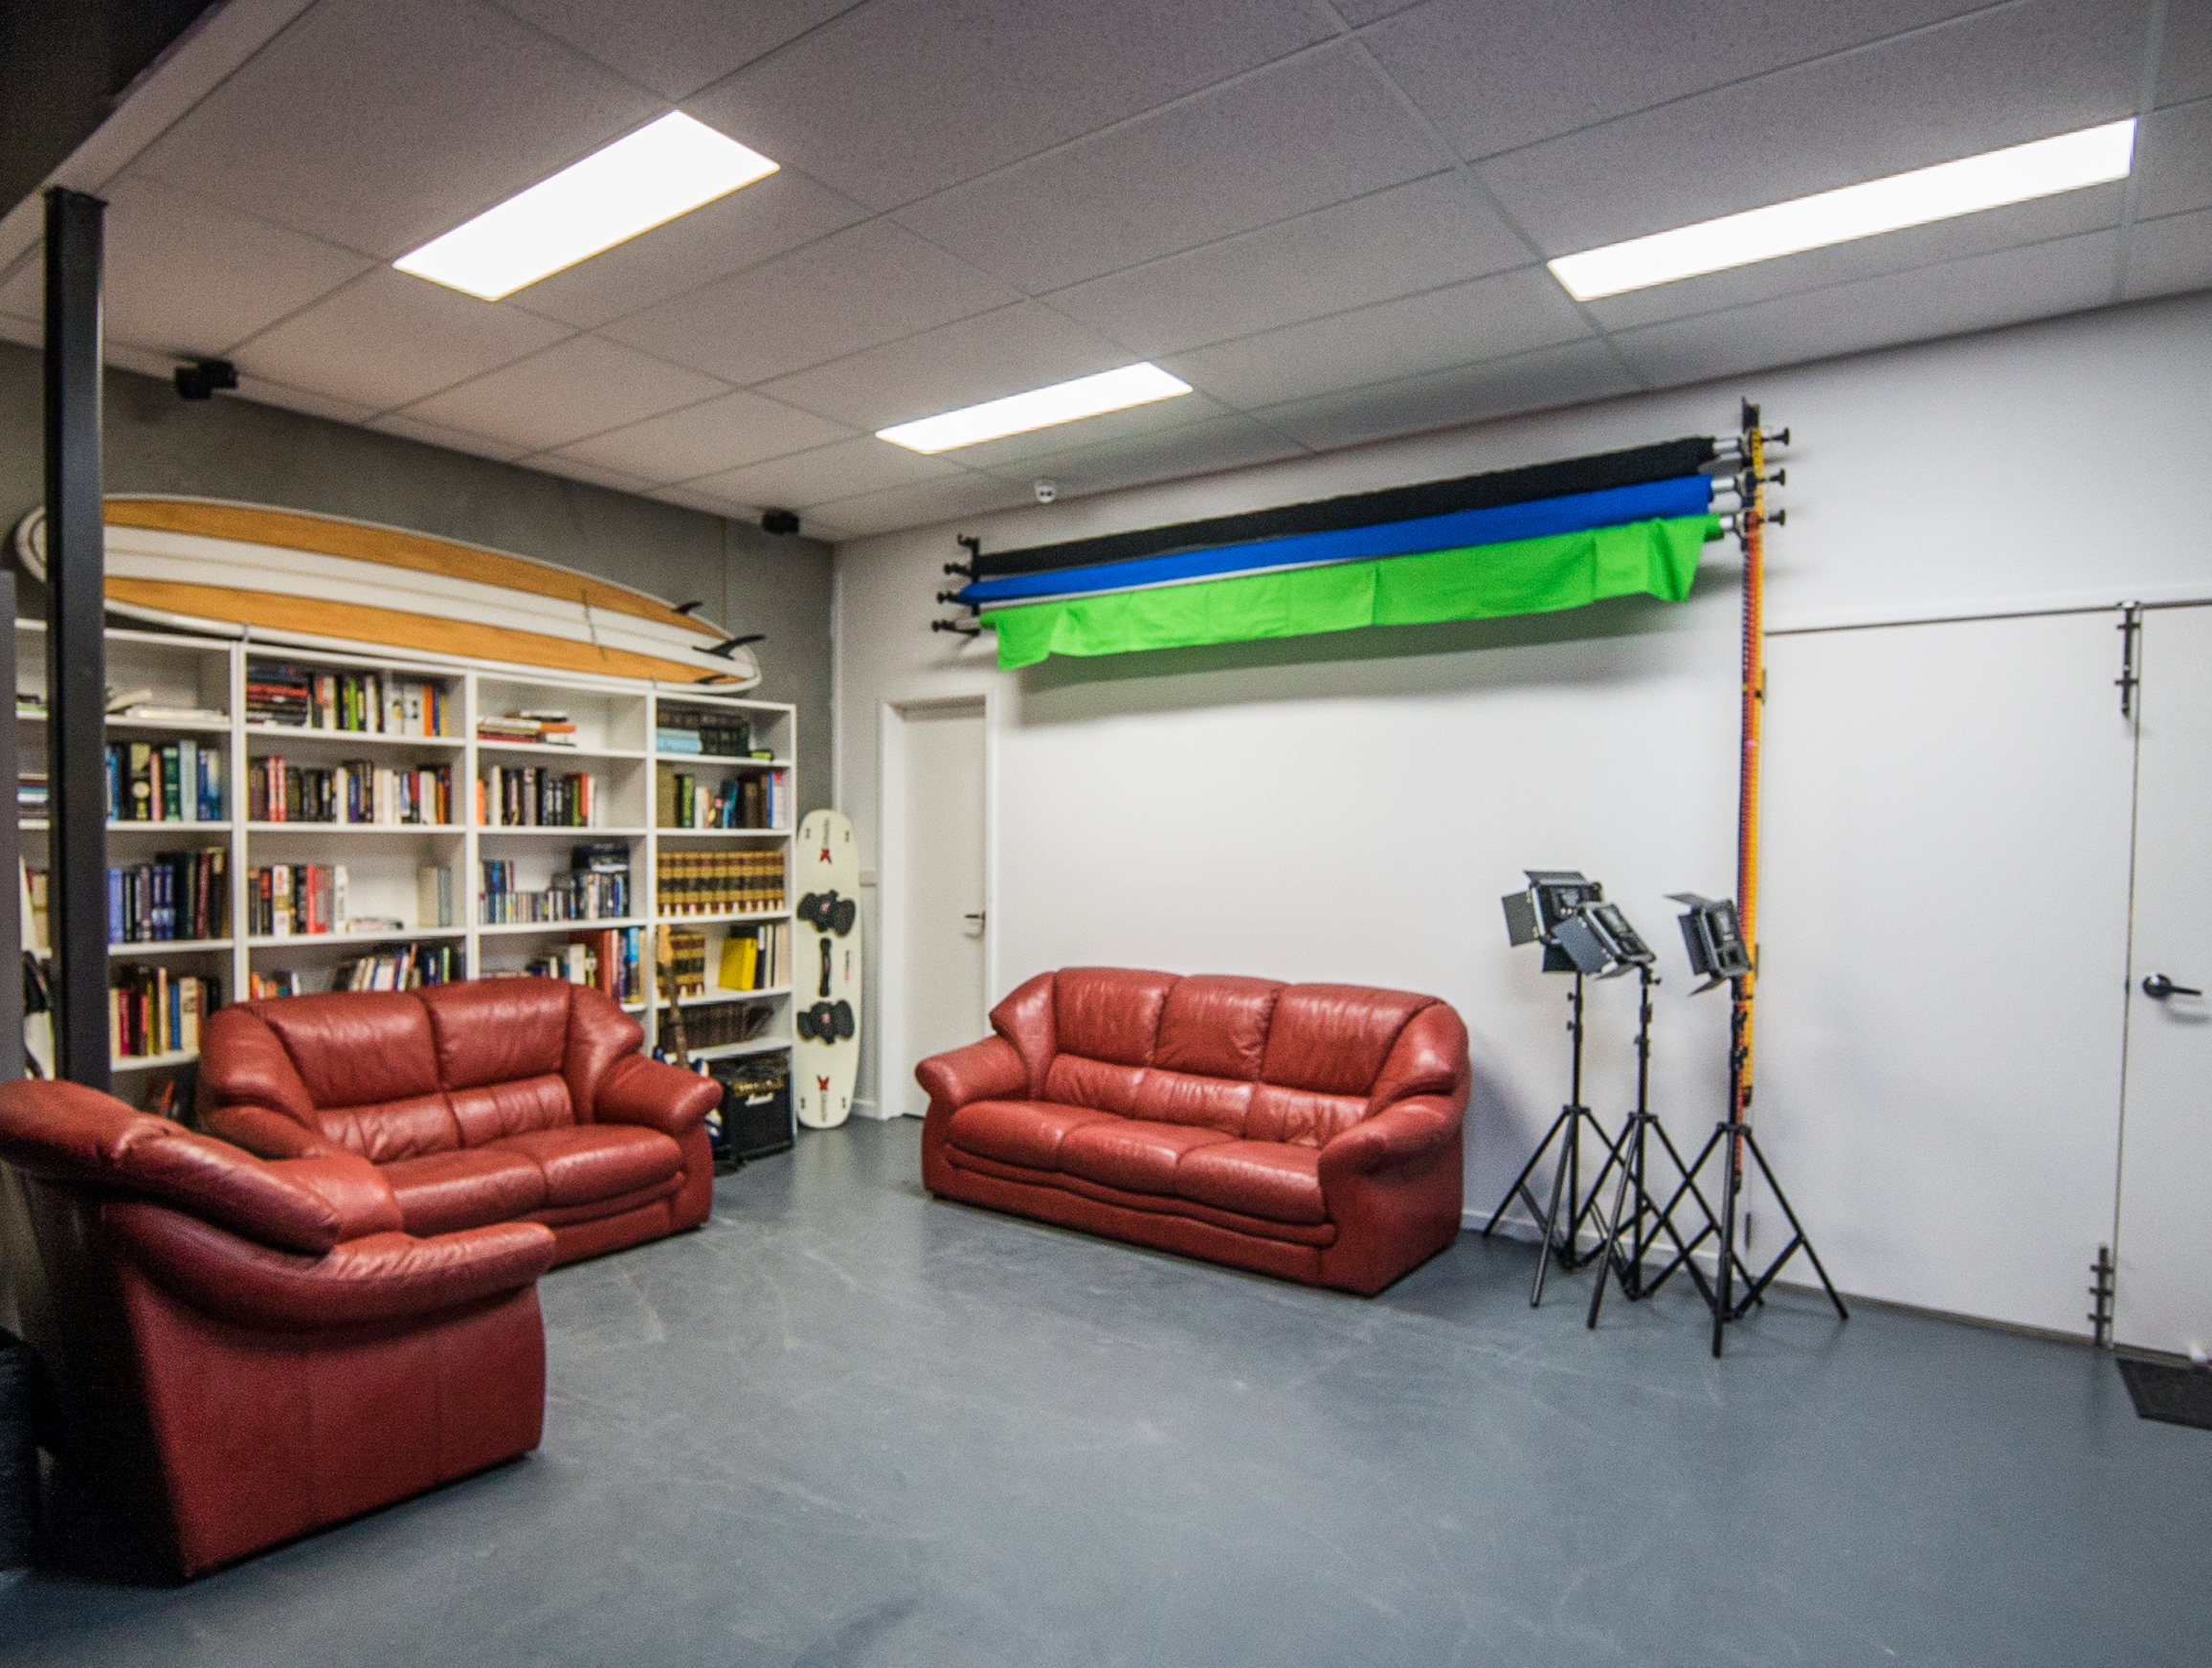 Studio - Available for $140 (excl. GST) an hour (minimum 2 hours). Discounted rates for members.